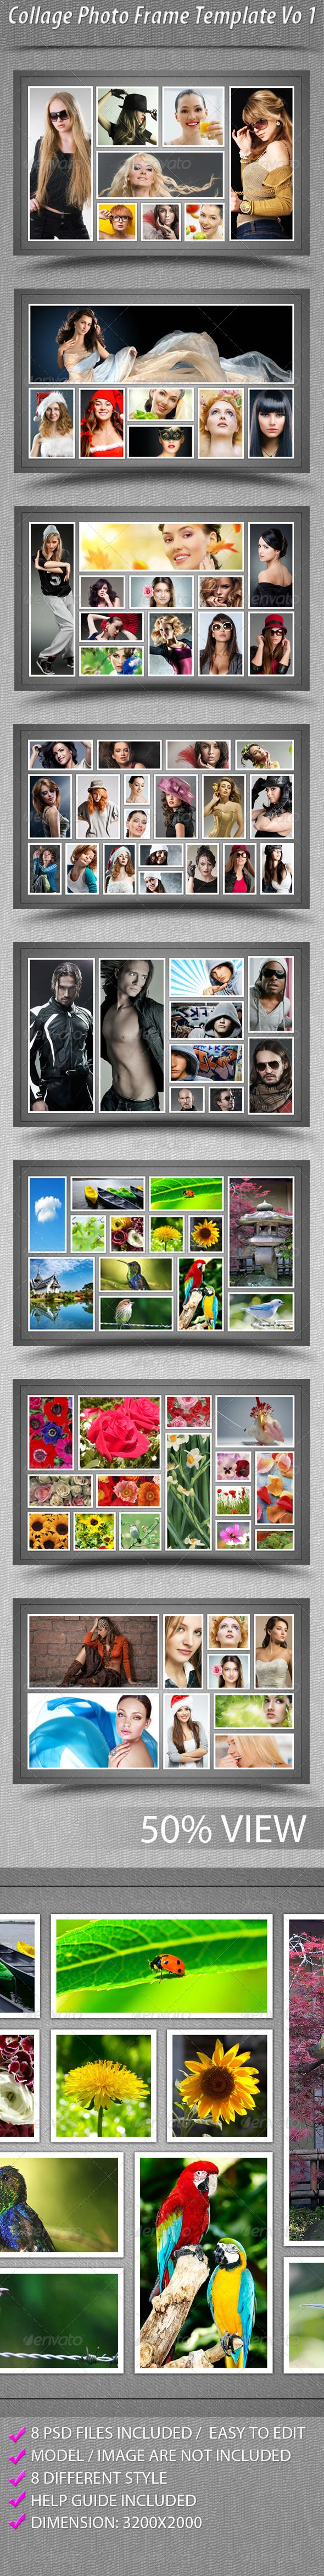 Photo collage template for word Canvas Prints UK - Huge range of Photo Canvas styles